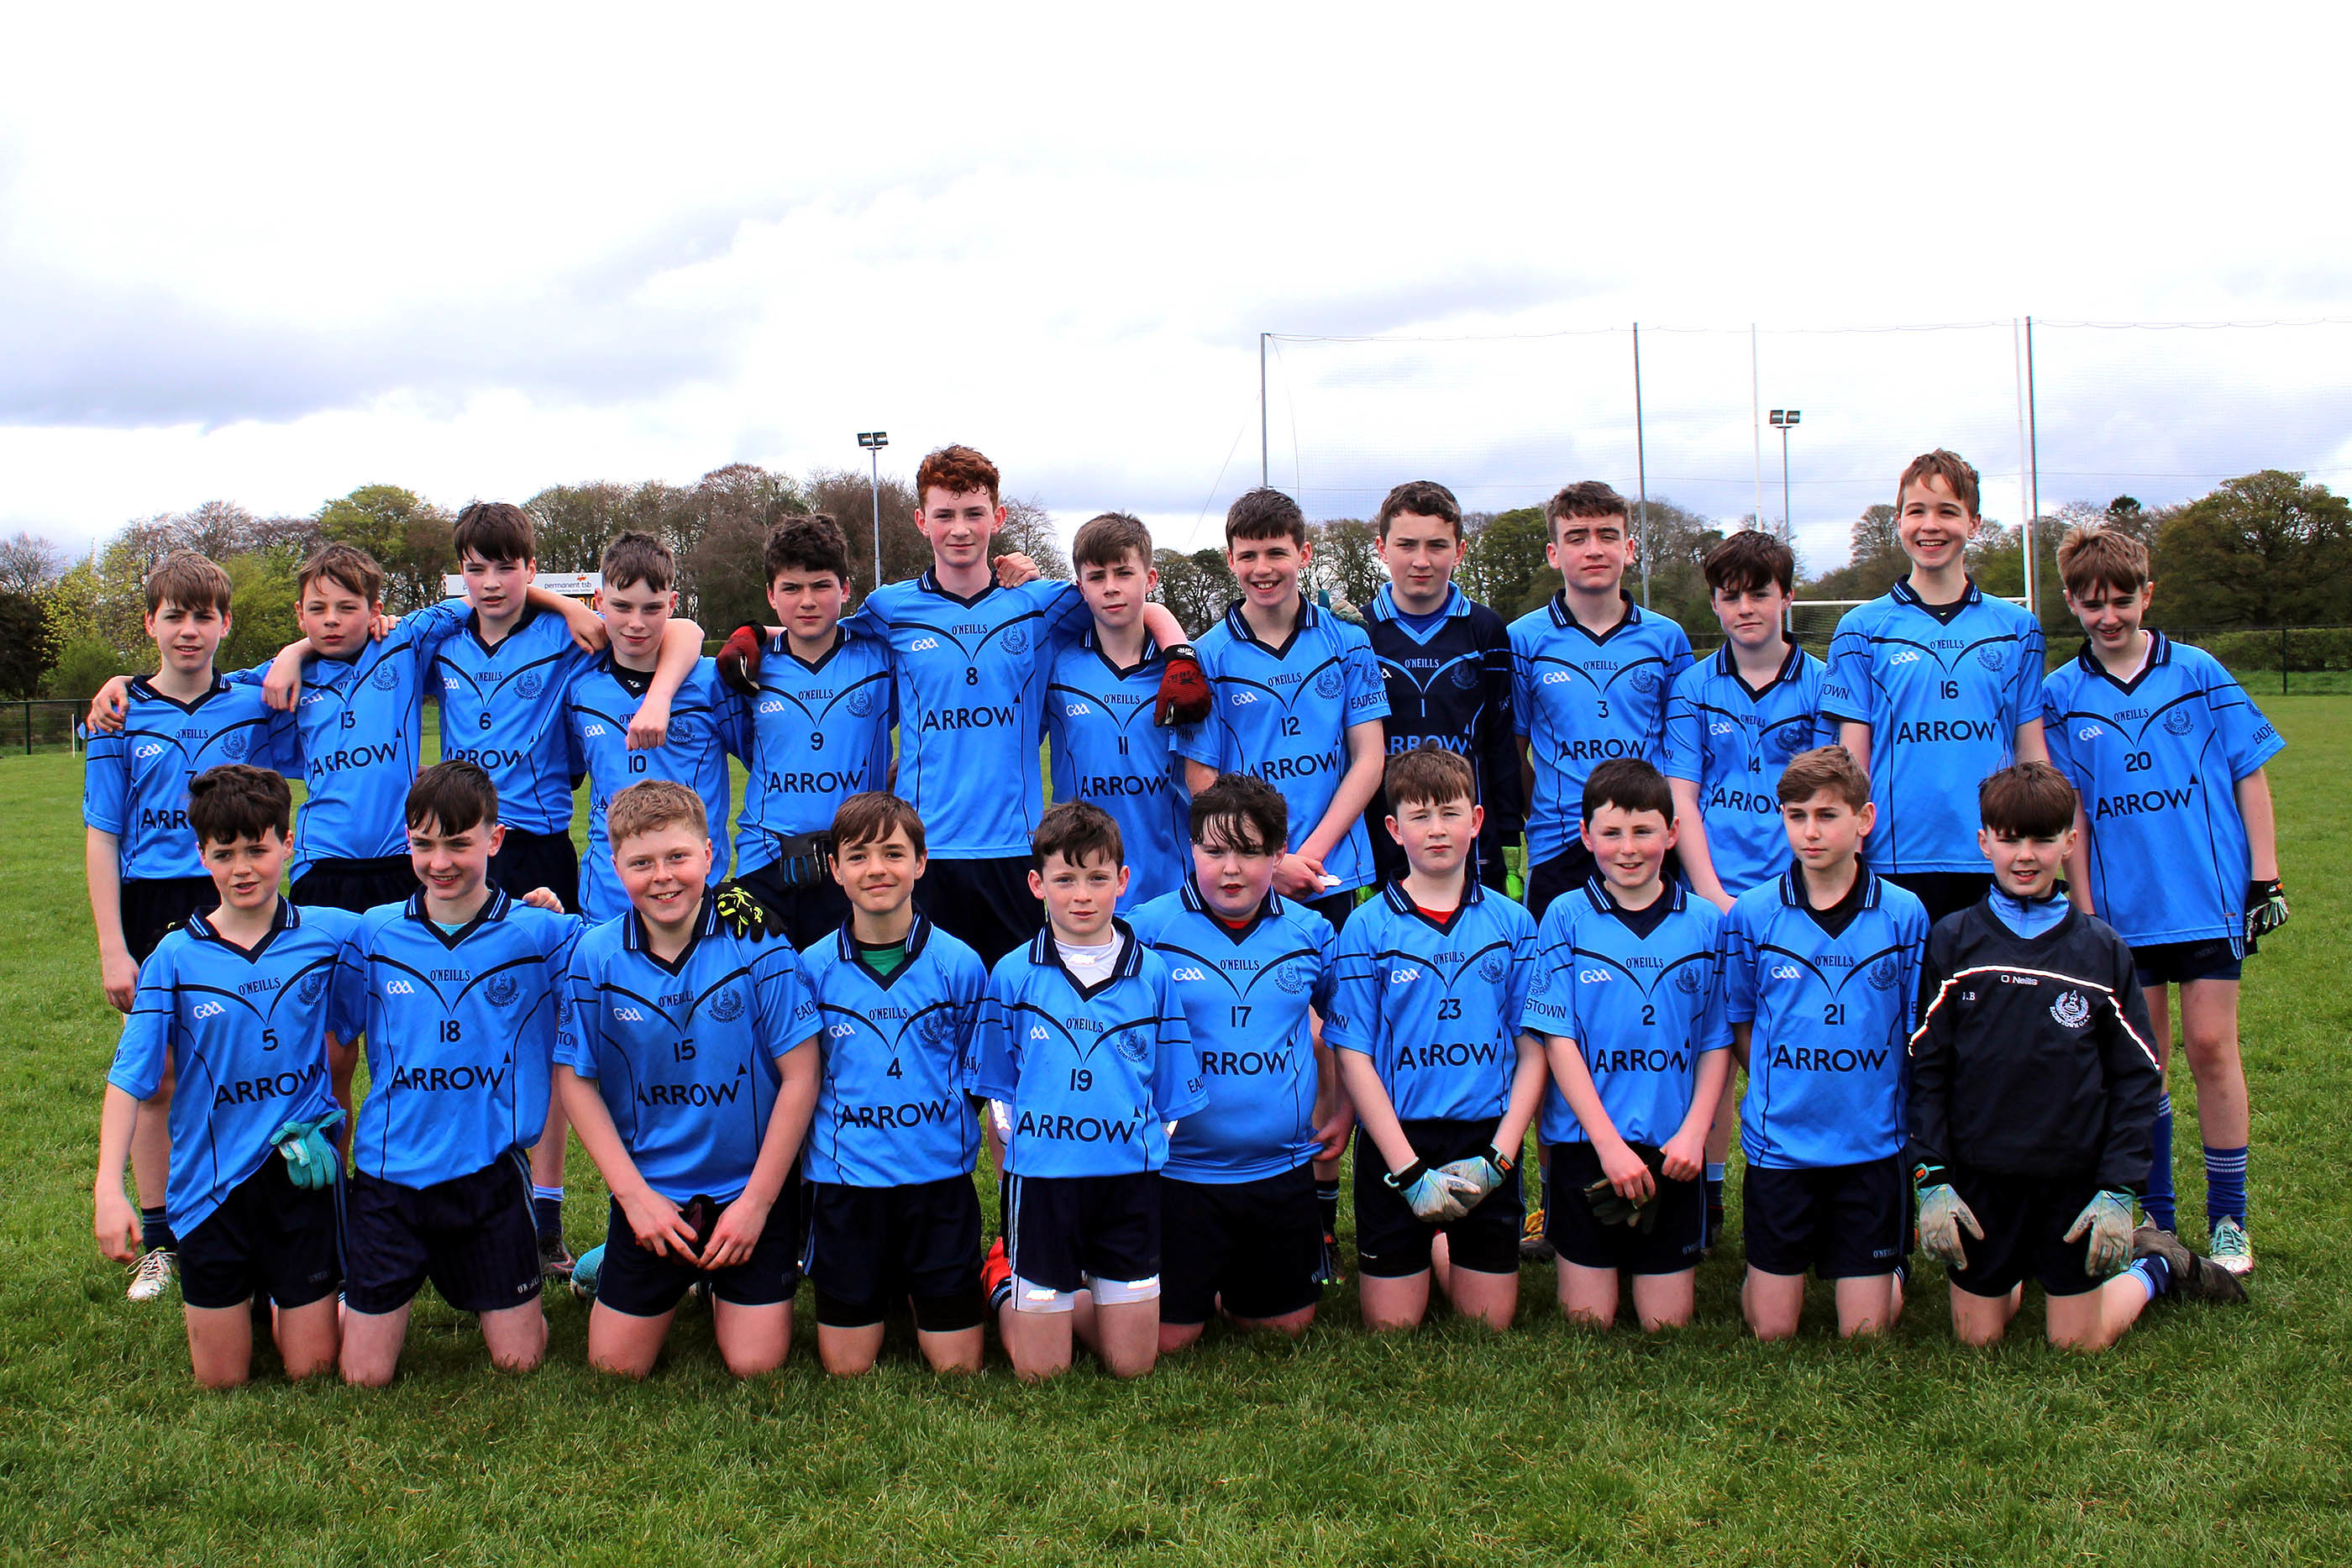 U14 20feile 20c 20boys 20team 20